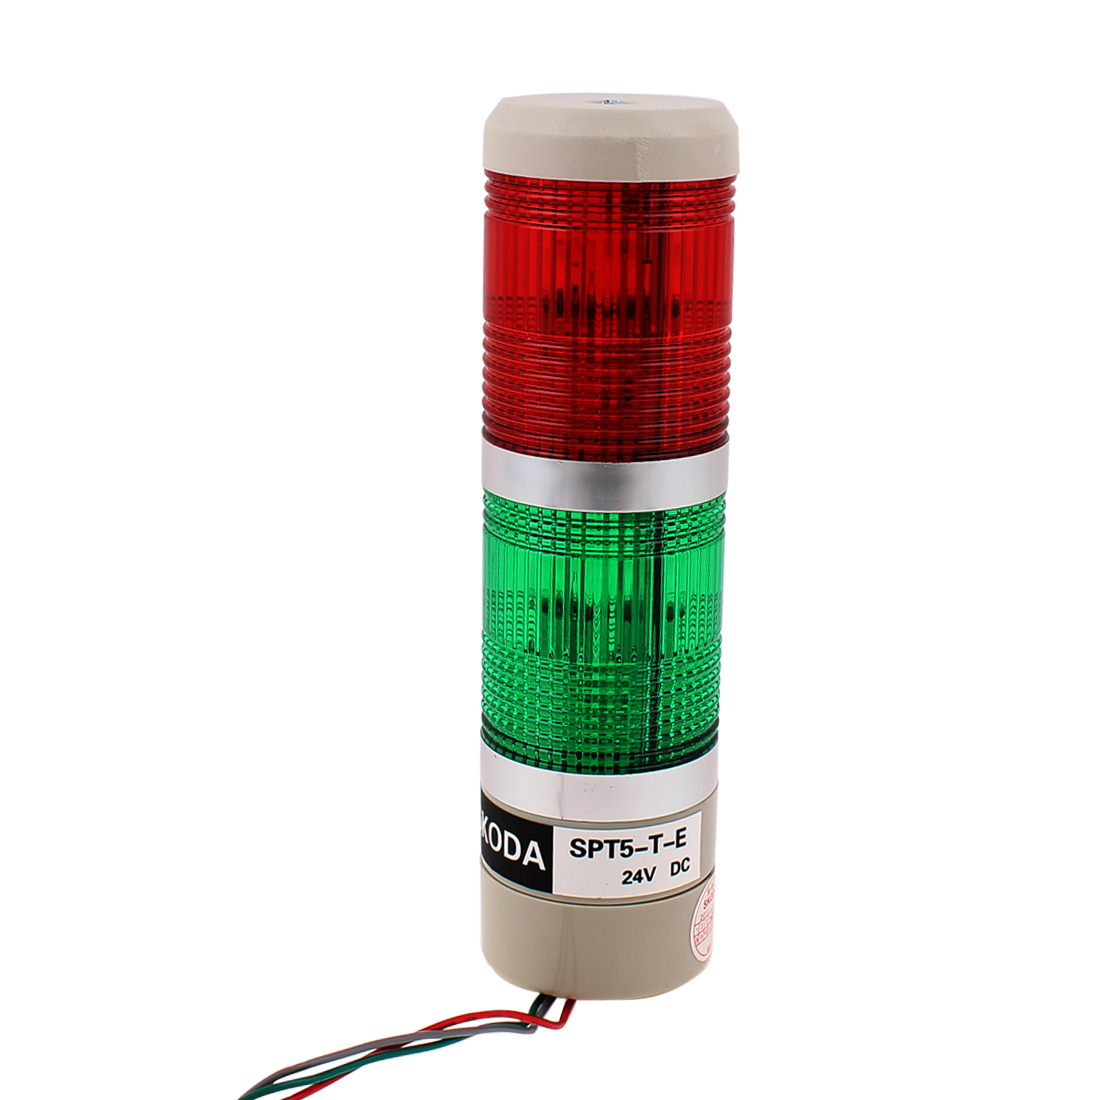 DC 24V Green Red Signal Tower Lamp Industrial Warning Stack Light SPT5-T-E